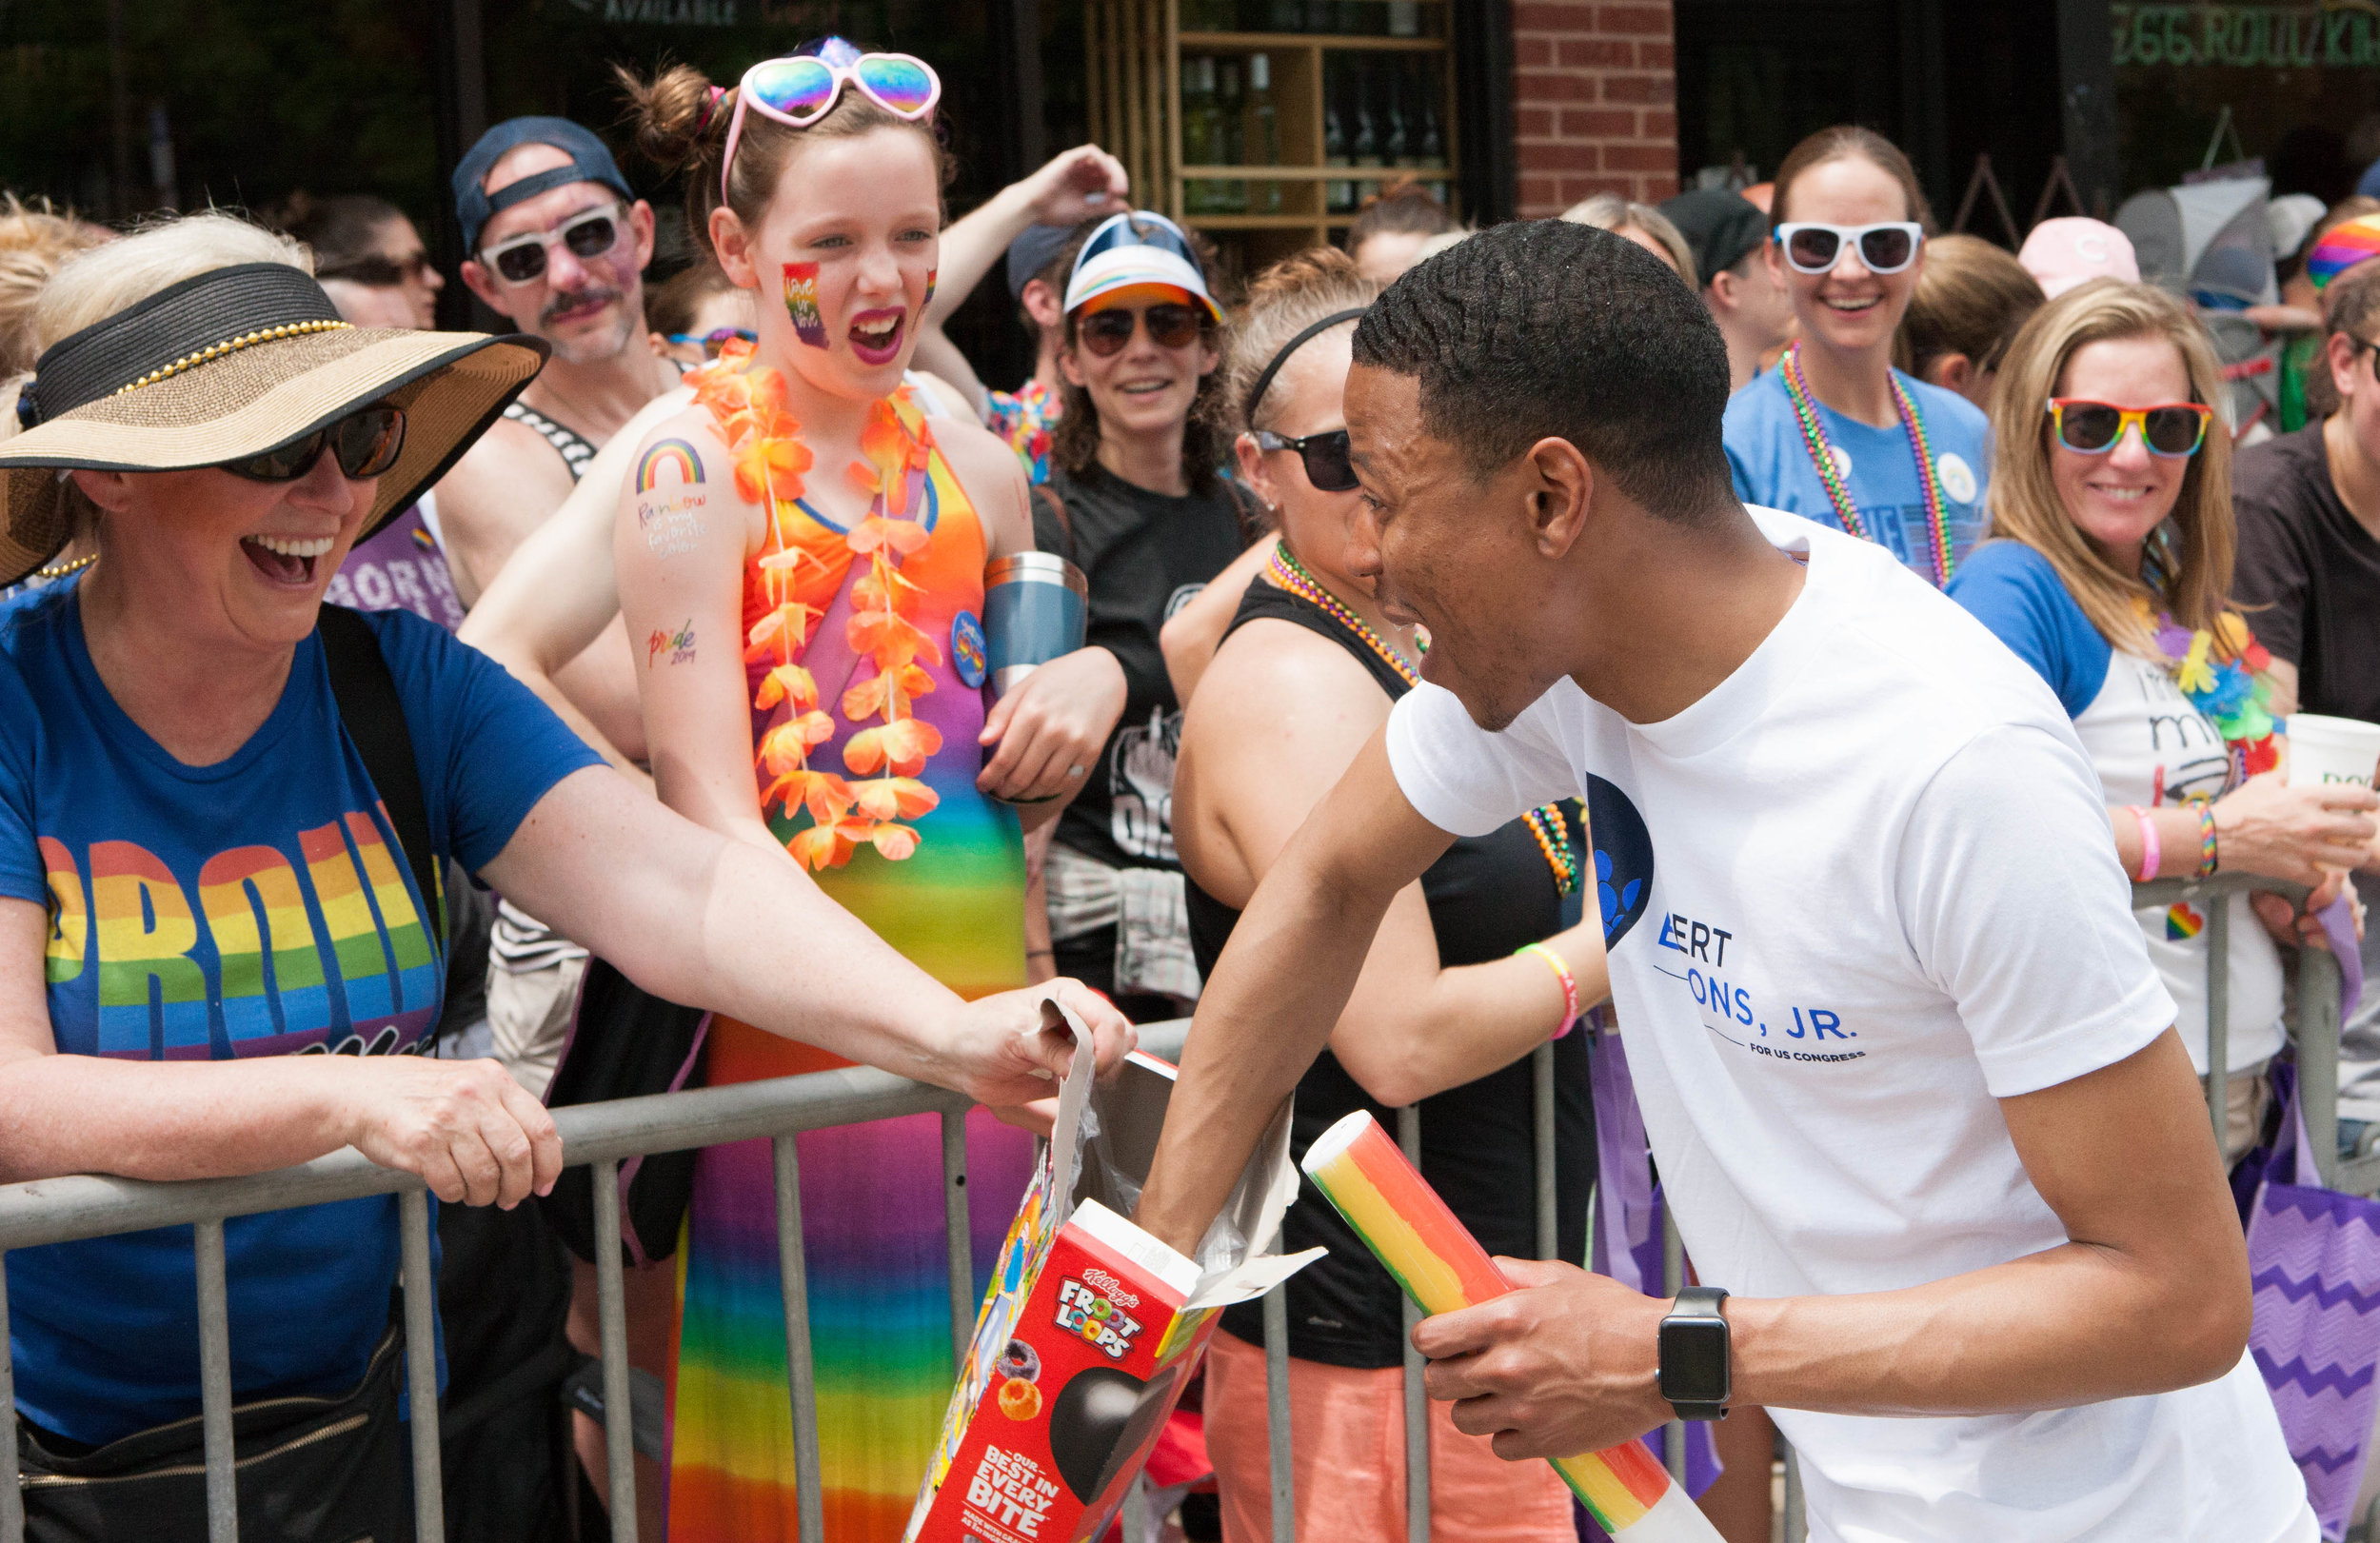 Robert laughs with a woman as he reaches into a box of cereal she holds at the Pride Parade.